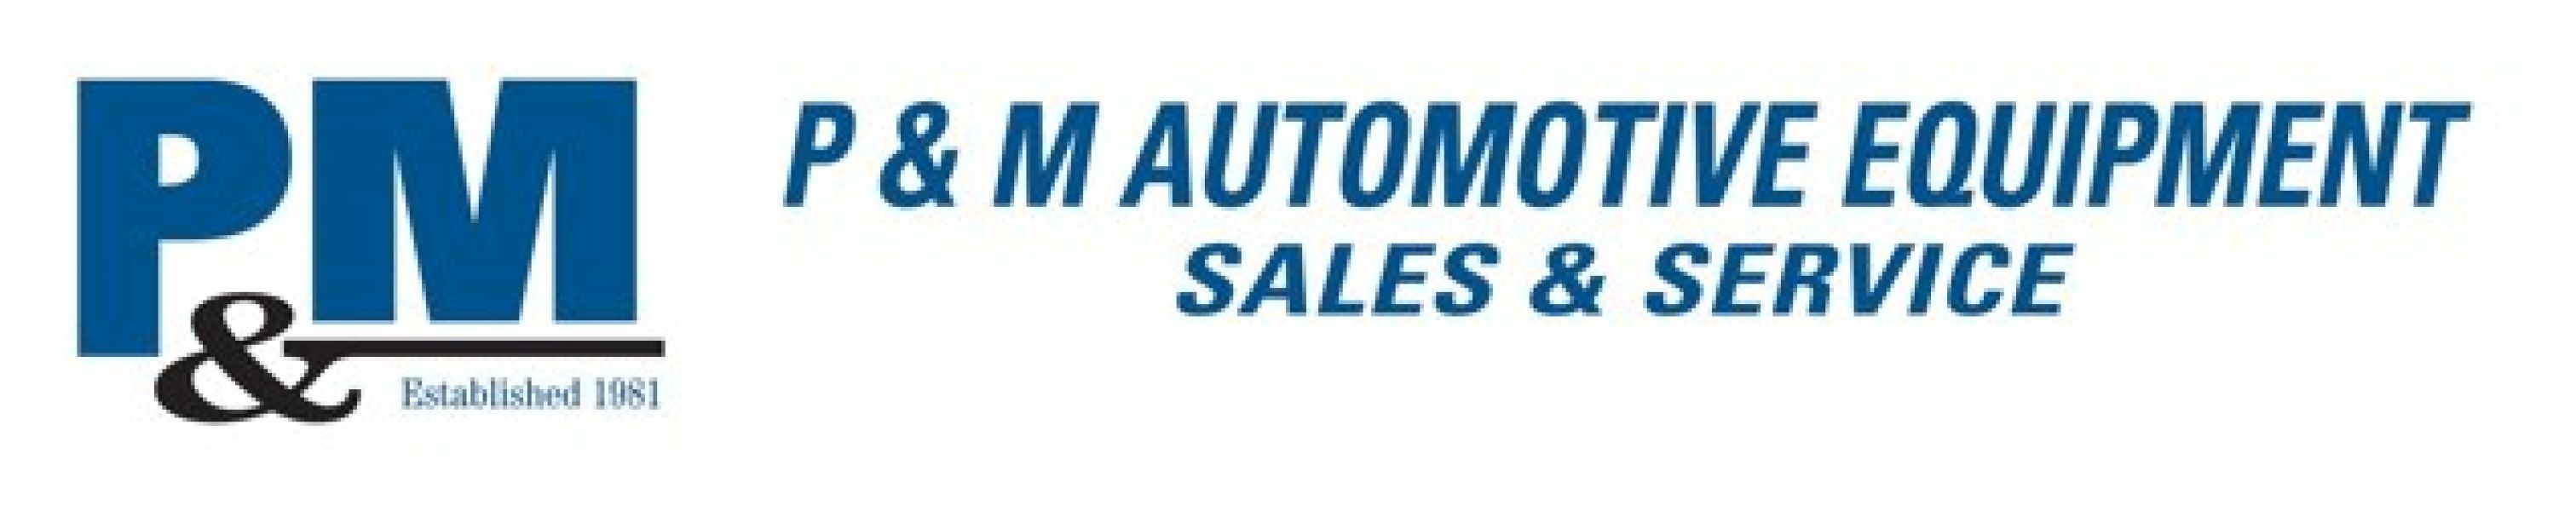 P&M Automotive Equipment